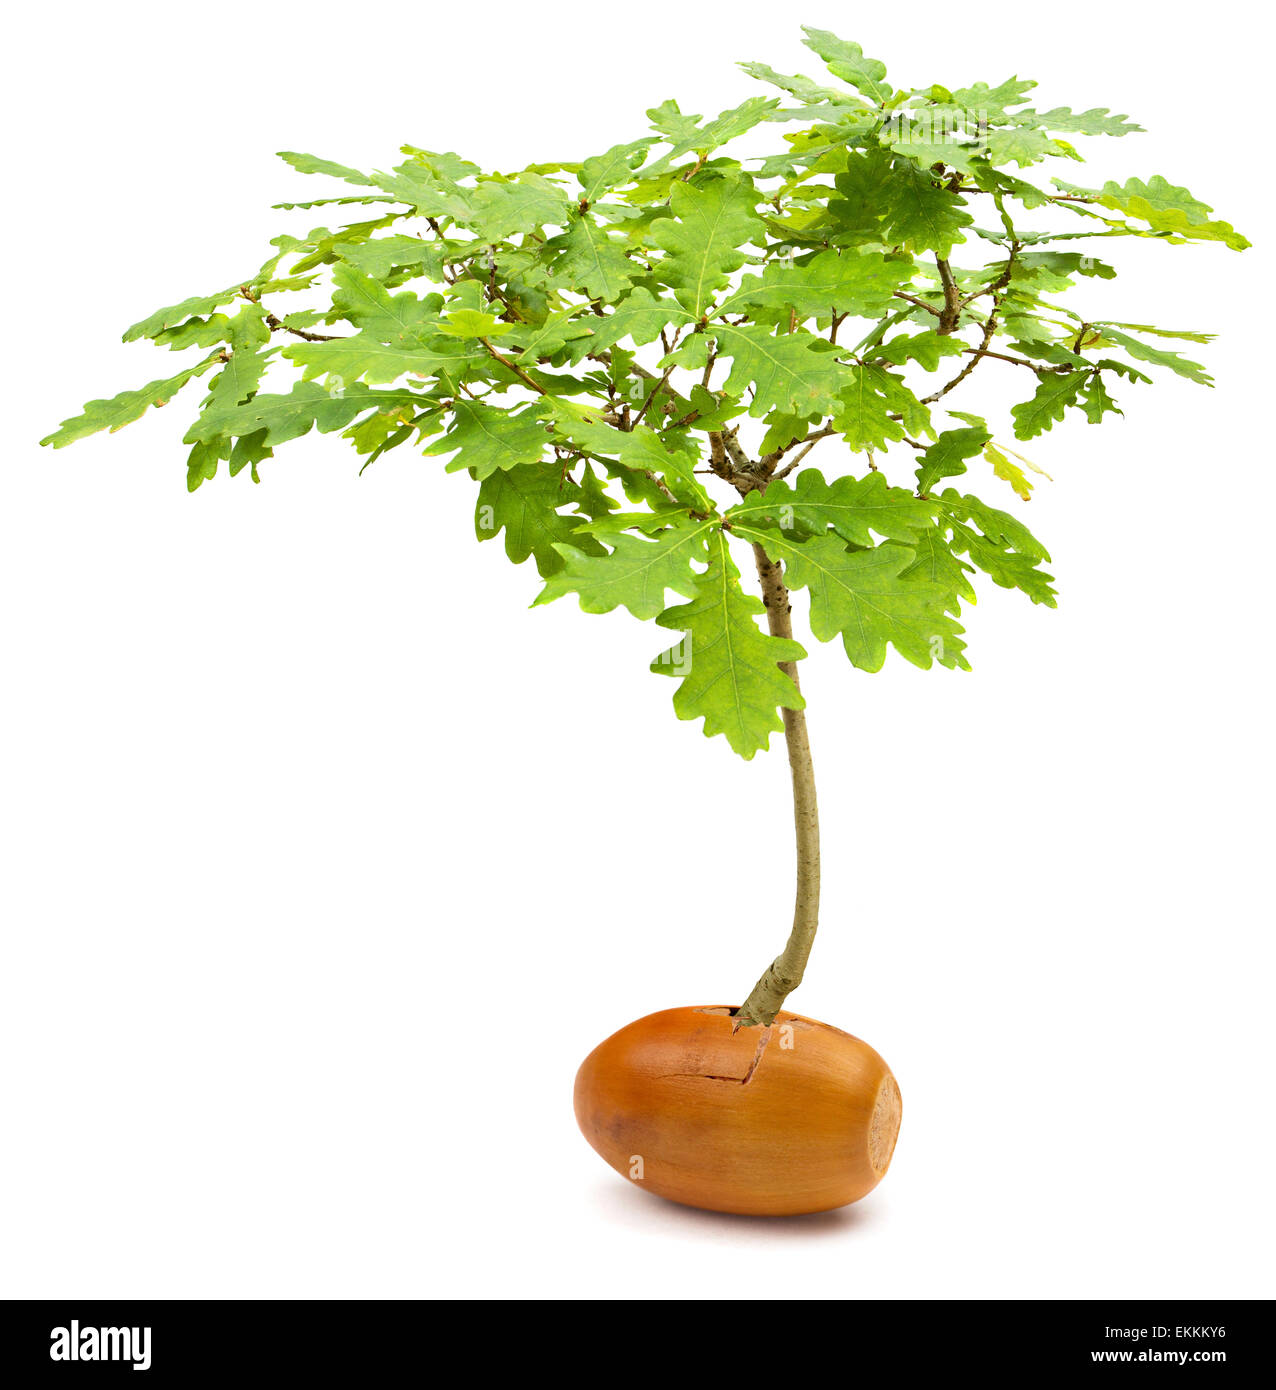 Conceptual manipulated image of a mighty oak tree Quercus robur growing out of a small acorn on white background - Stock Image